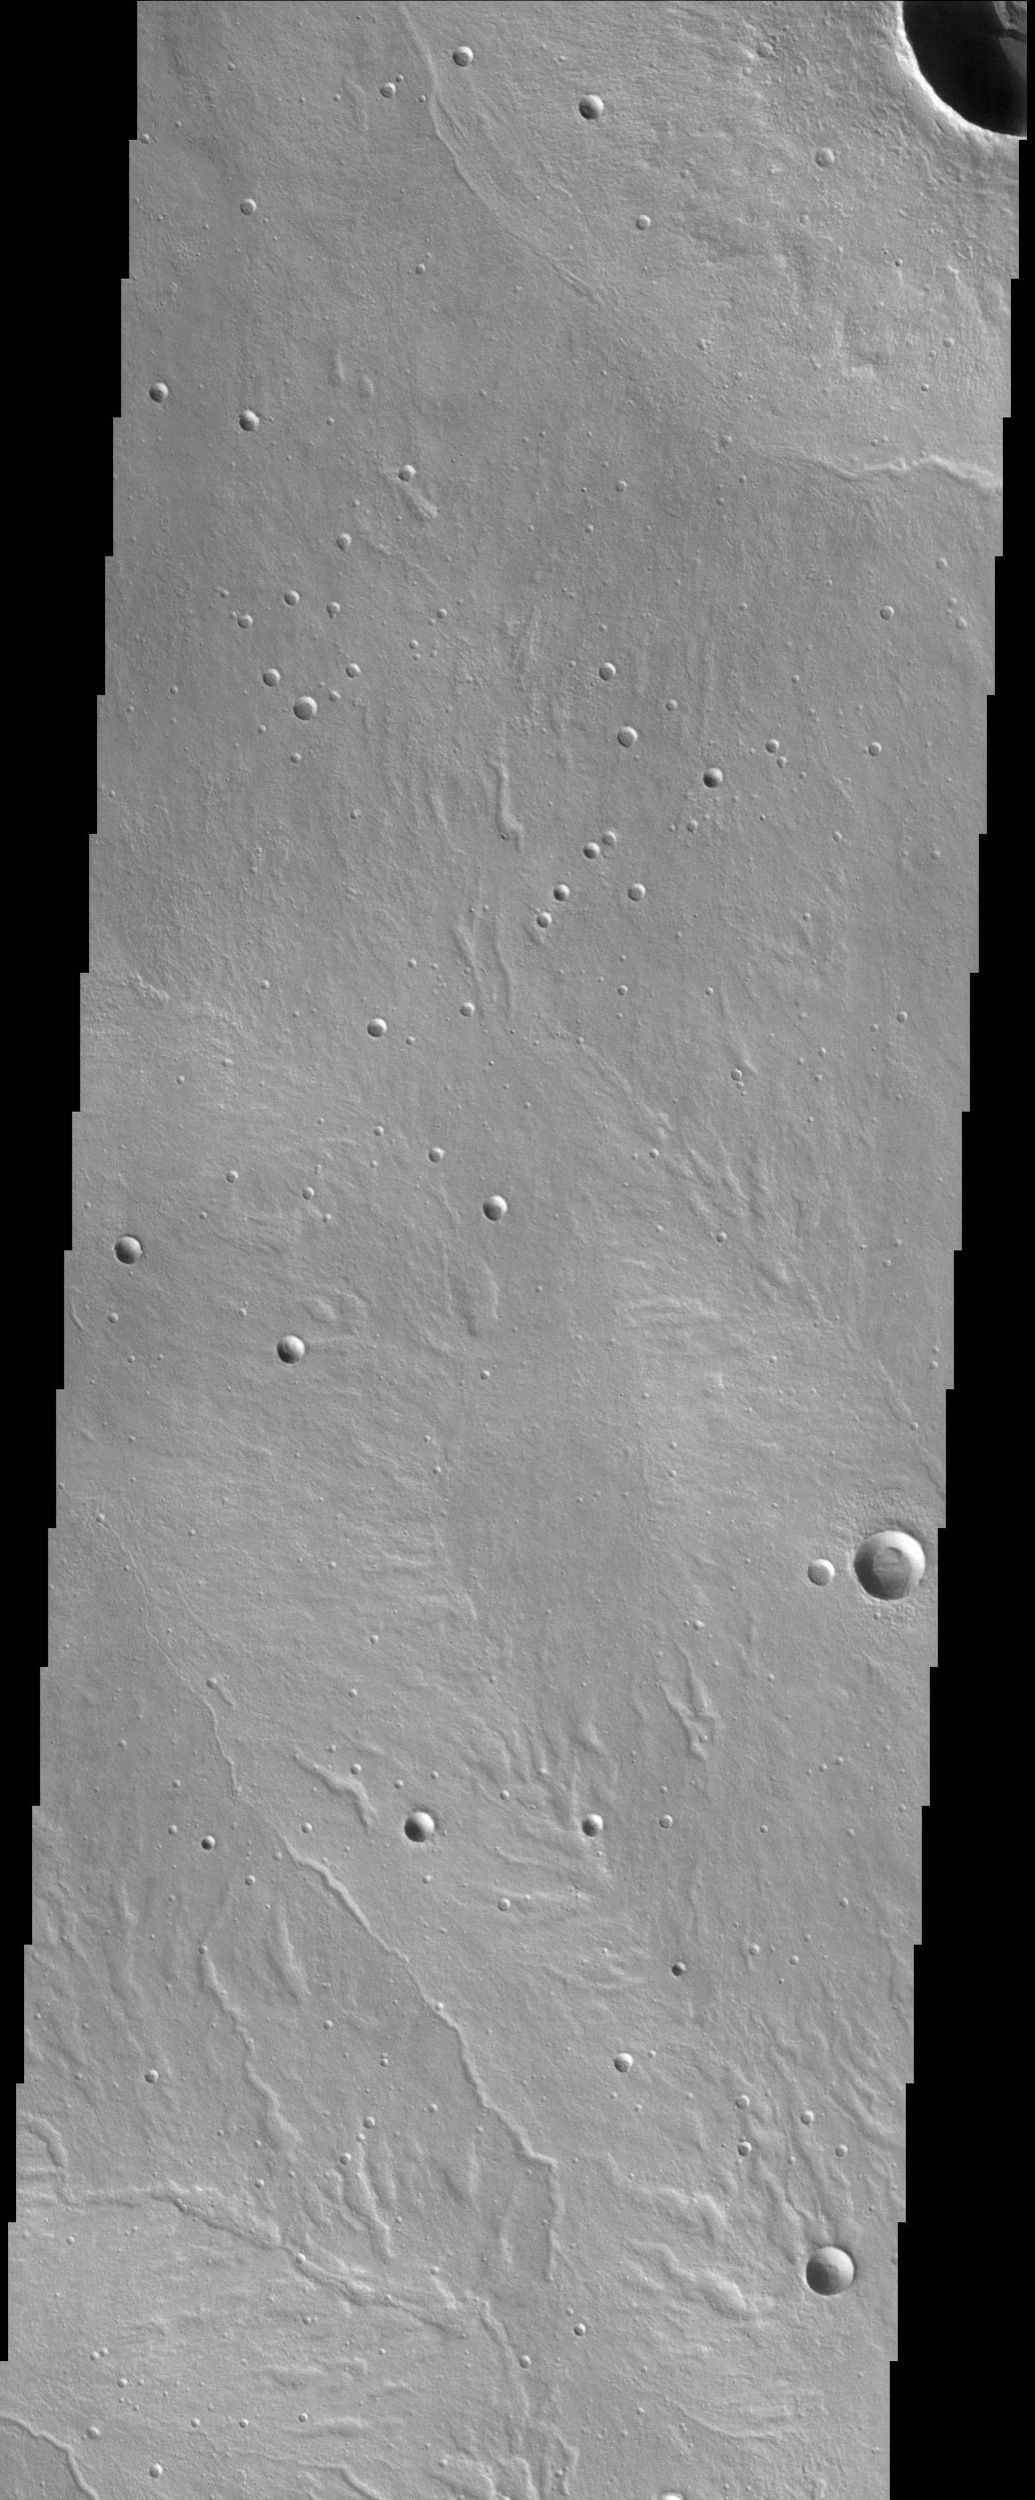 This NASA Mars Odyssey image shows a portion of a volcano called Alba Patera. This region has many unique valley features that at first glance look much like the patterns formed by rivers and tributaries on Earth, but are actually quite discontinuous.